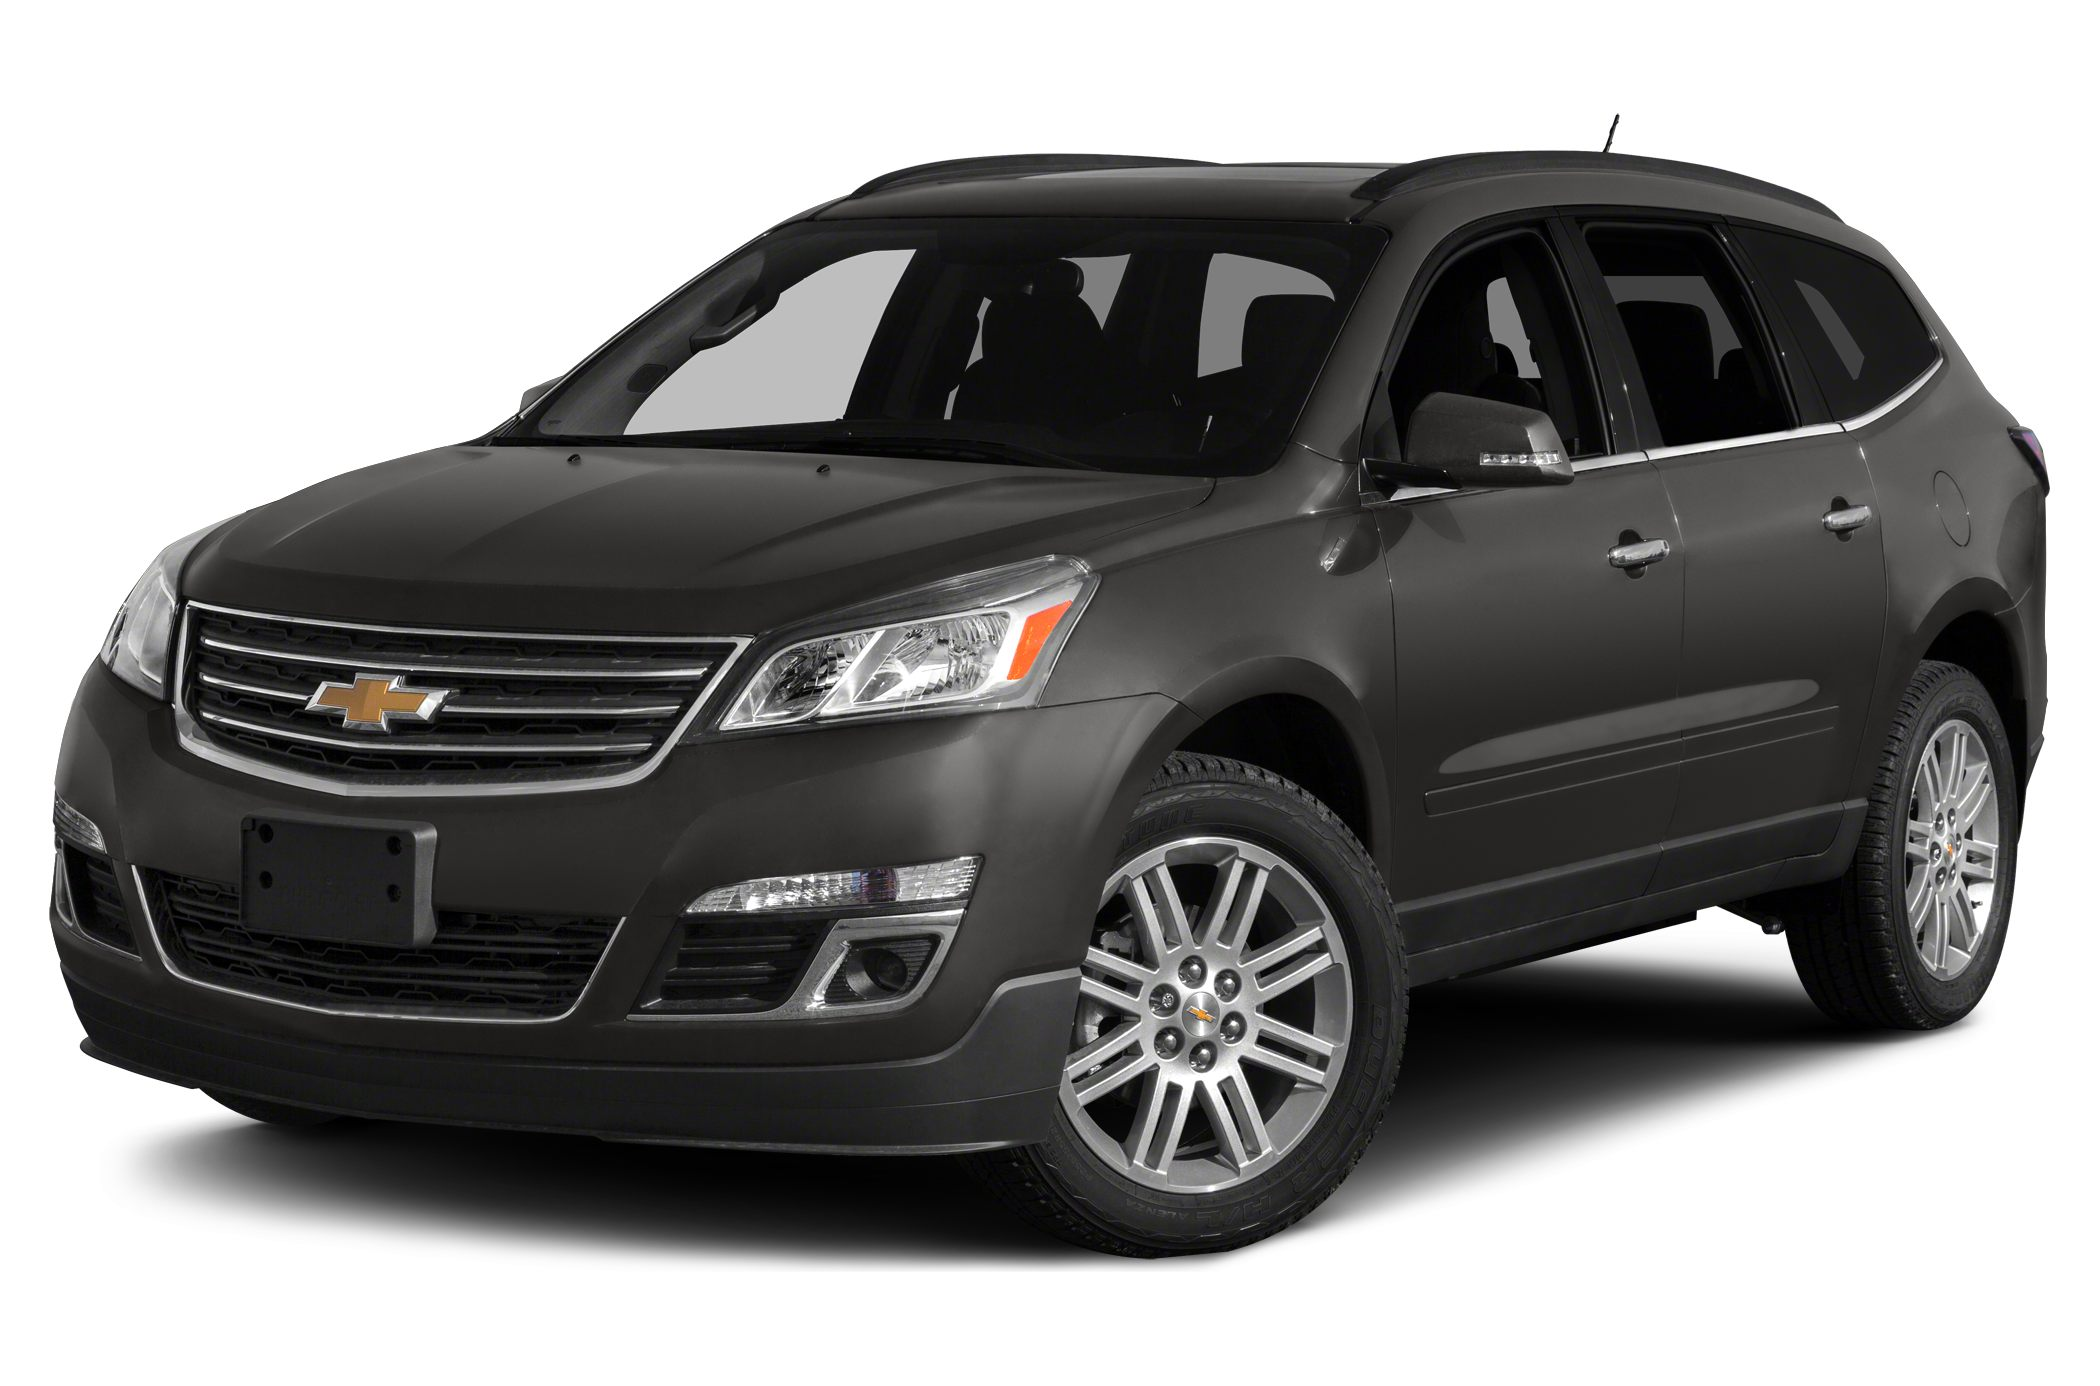 2015 Chevrolet Traverse 1LT SUV for sale in Los Lunas for $35,305 with 0 miles